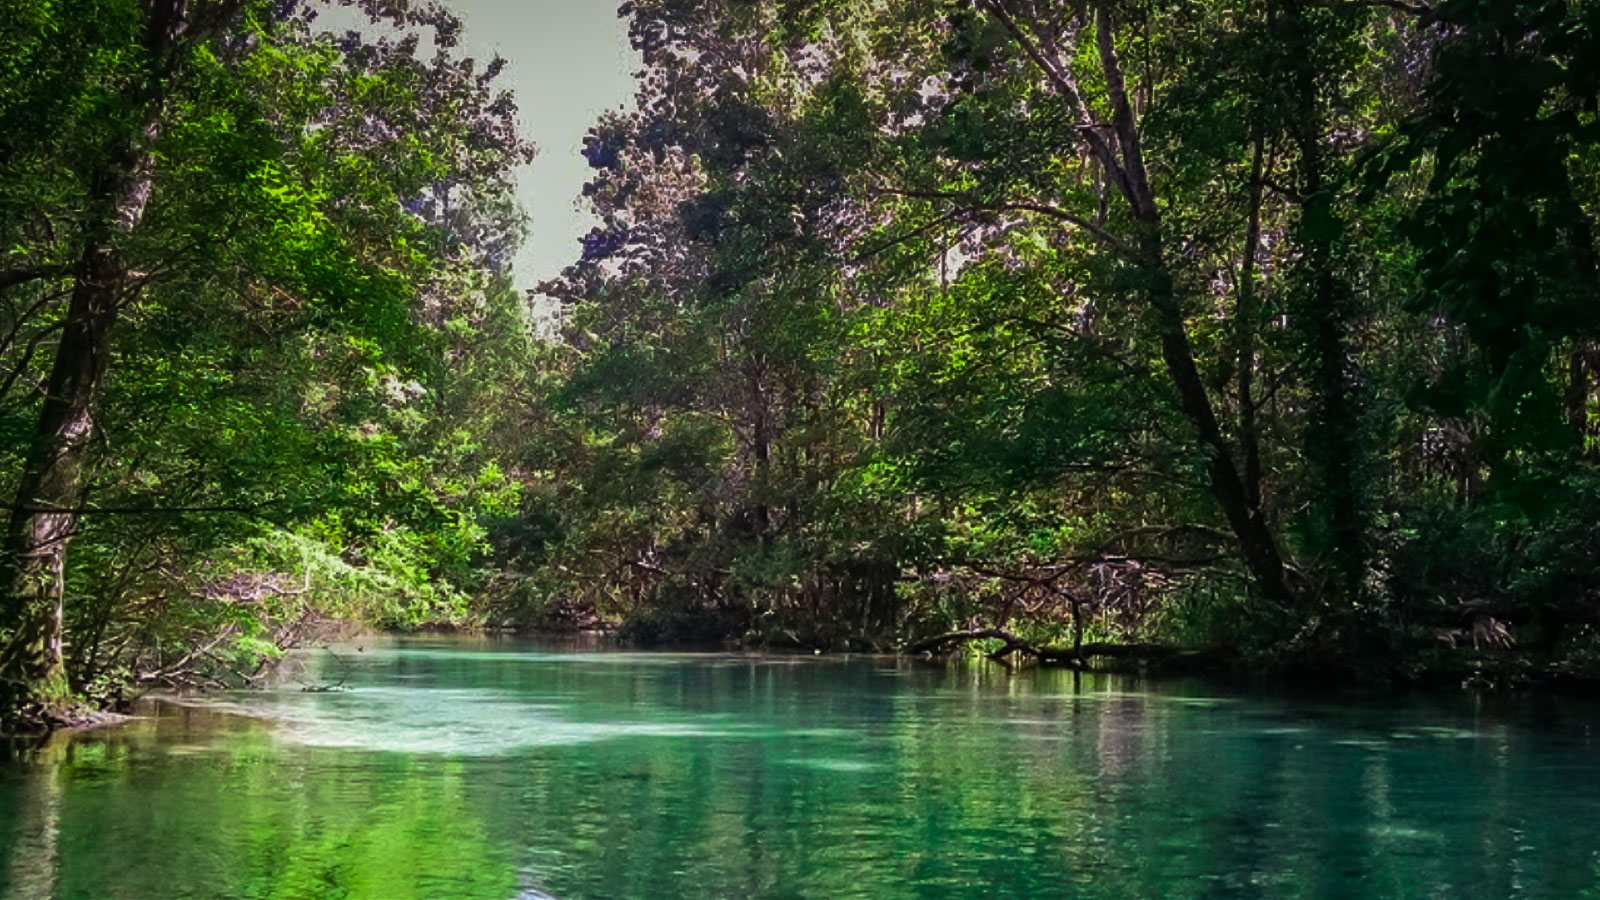 Weeki Wachee River - Spring Hill, Florida